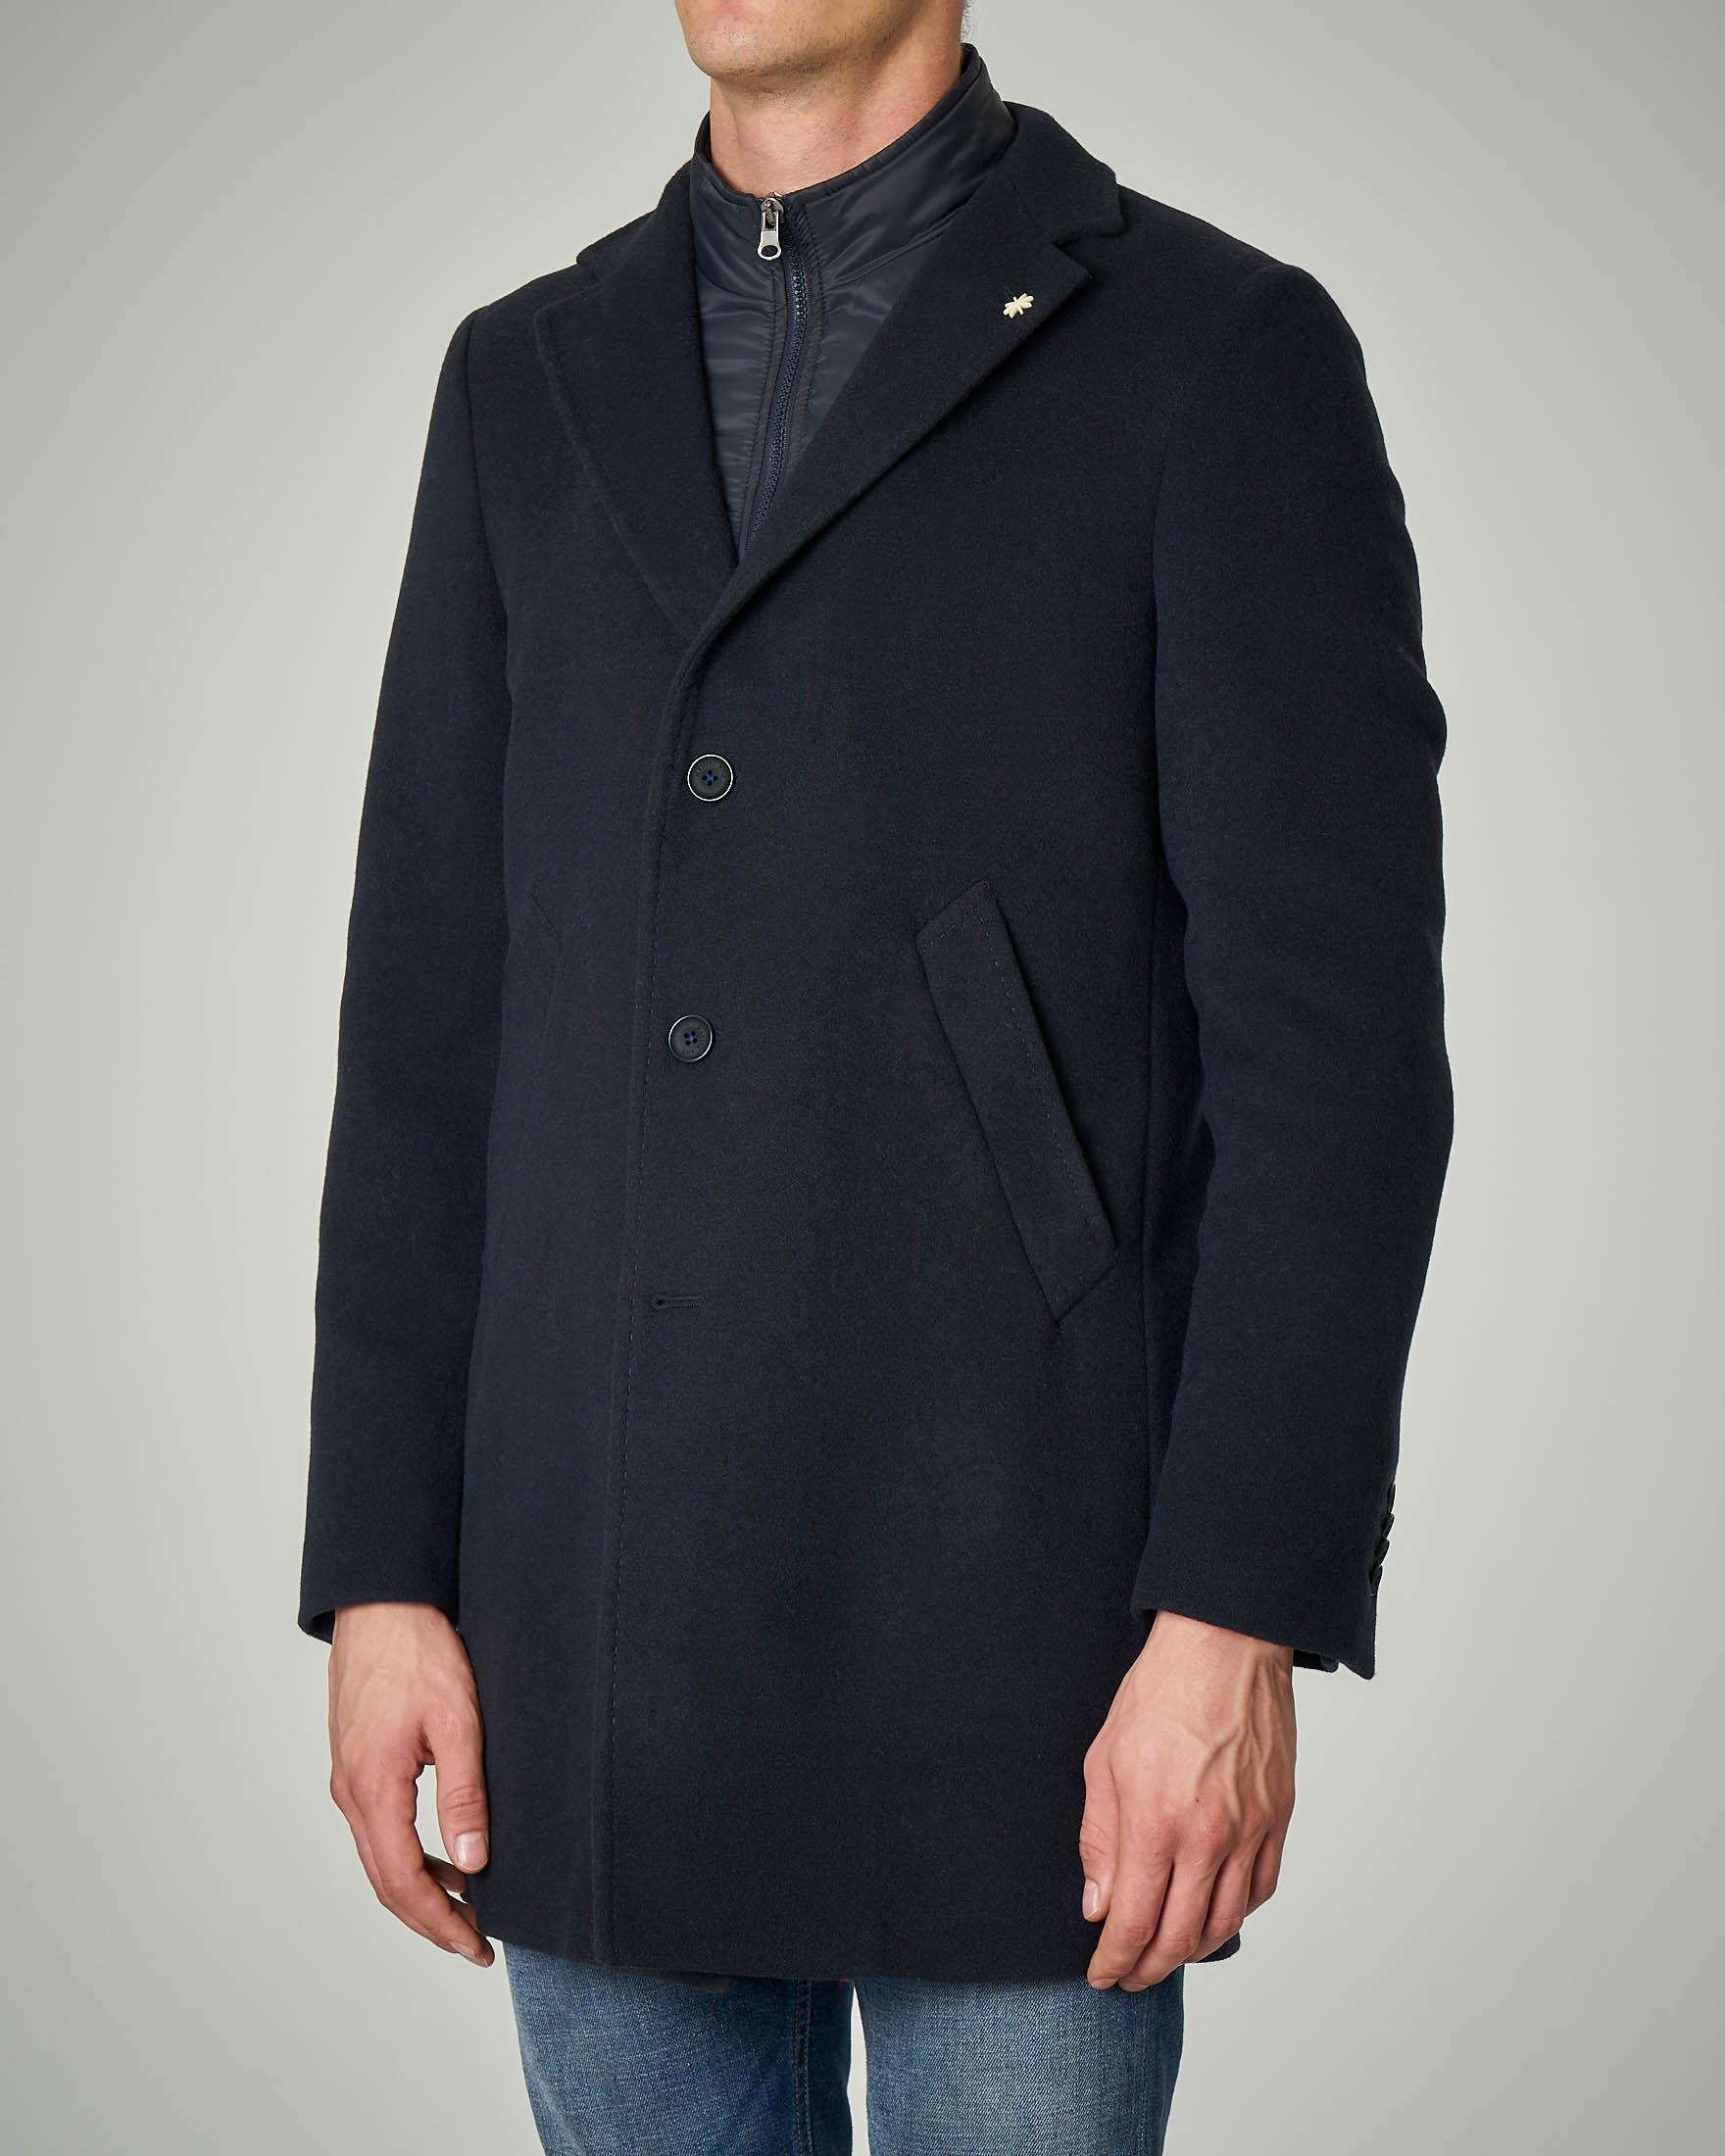 Cappotto blu con davantino in nylon